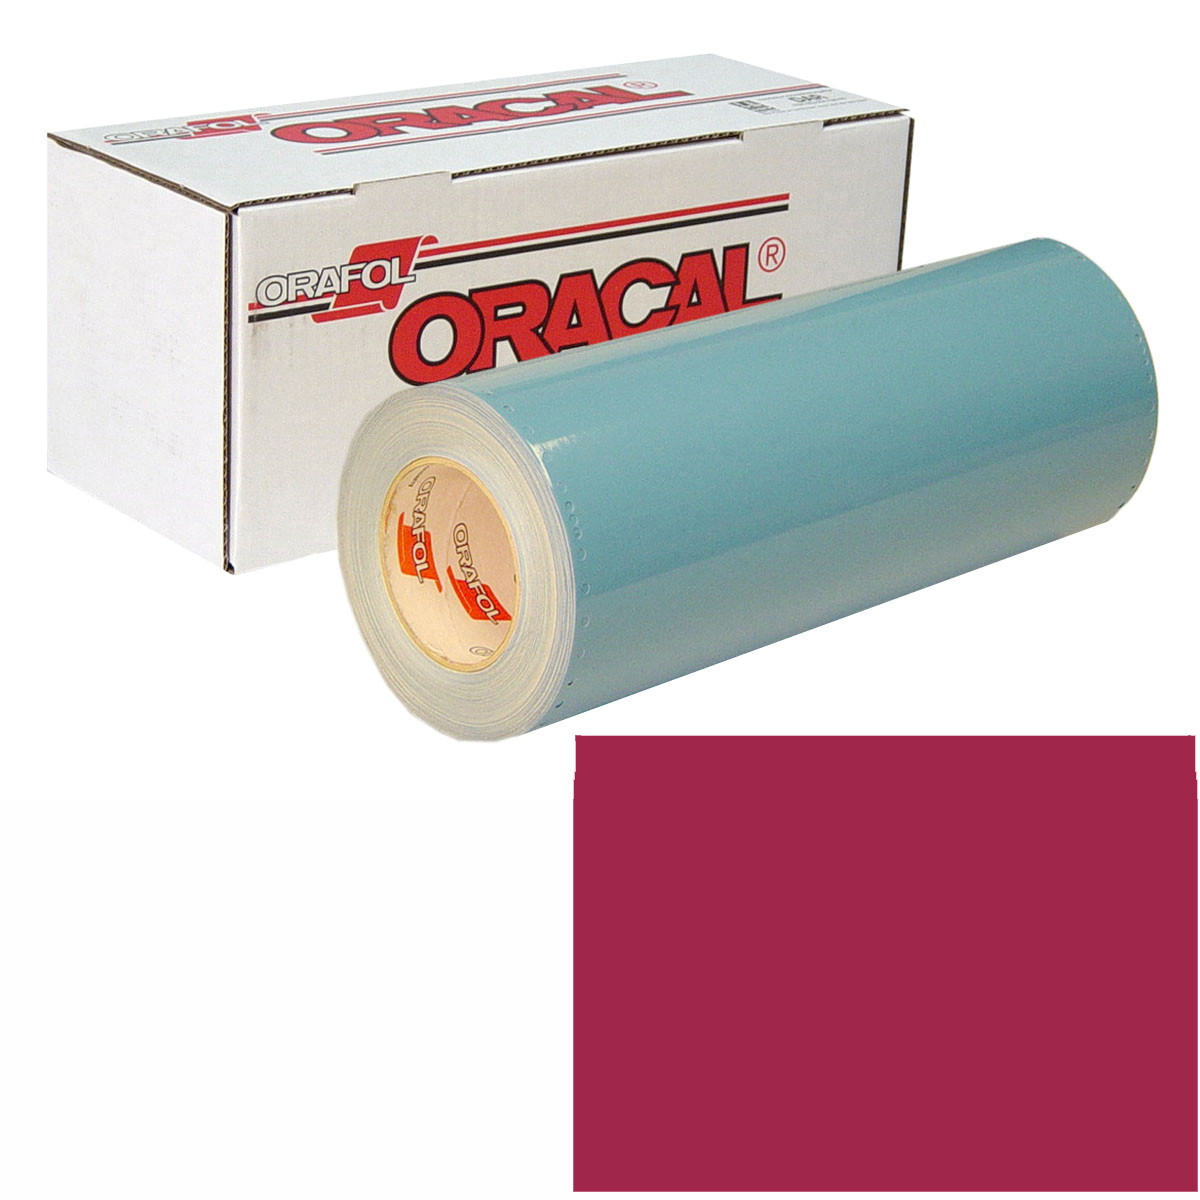 ORACAL 751 Unp 48in X 50yd 030 Dark Red